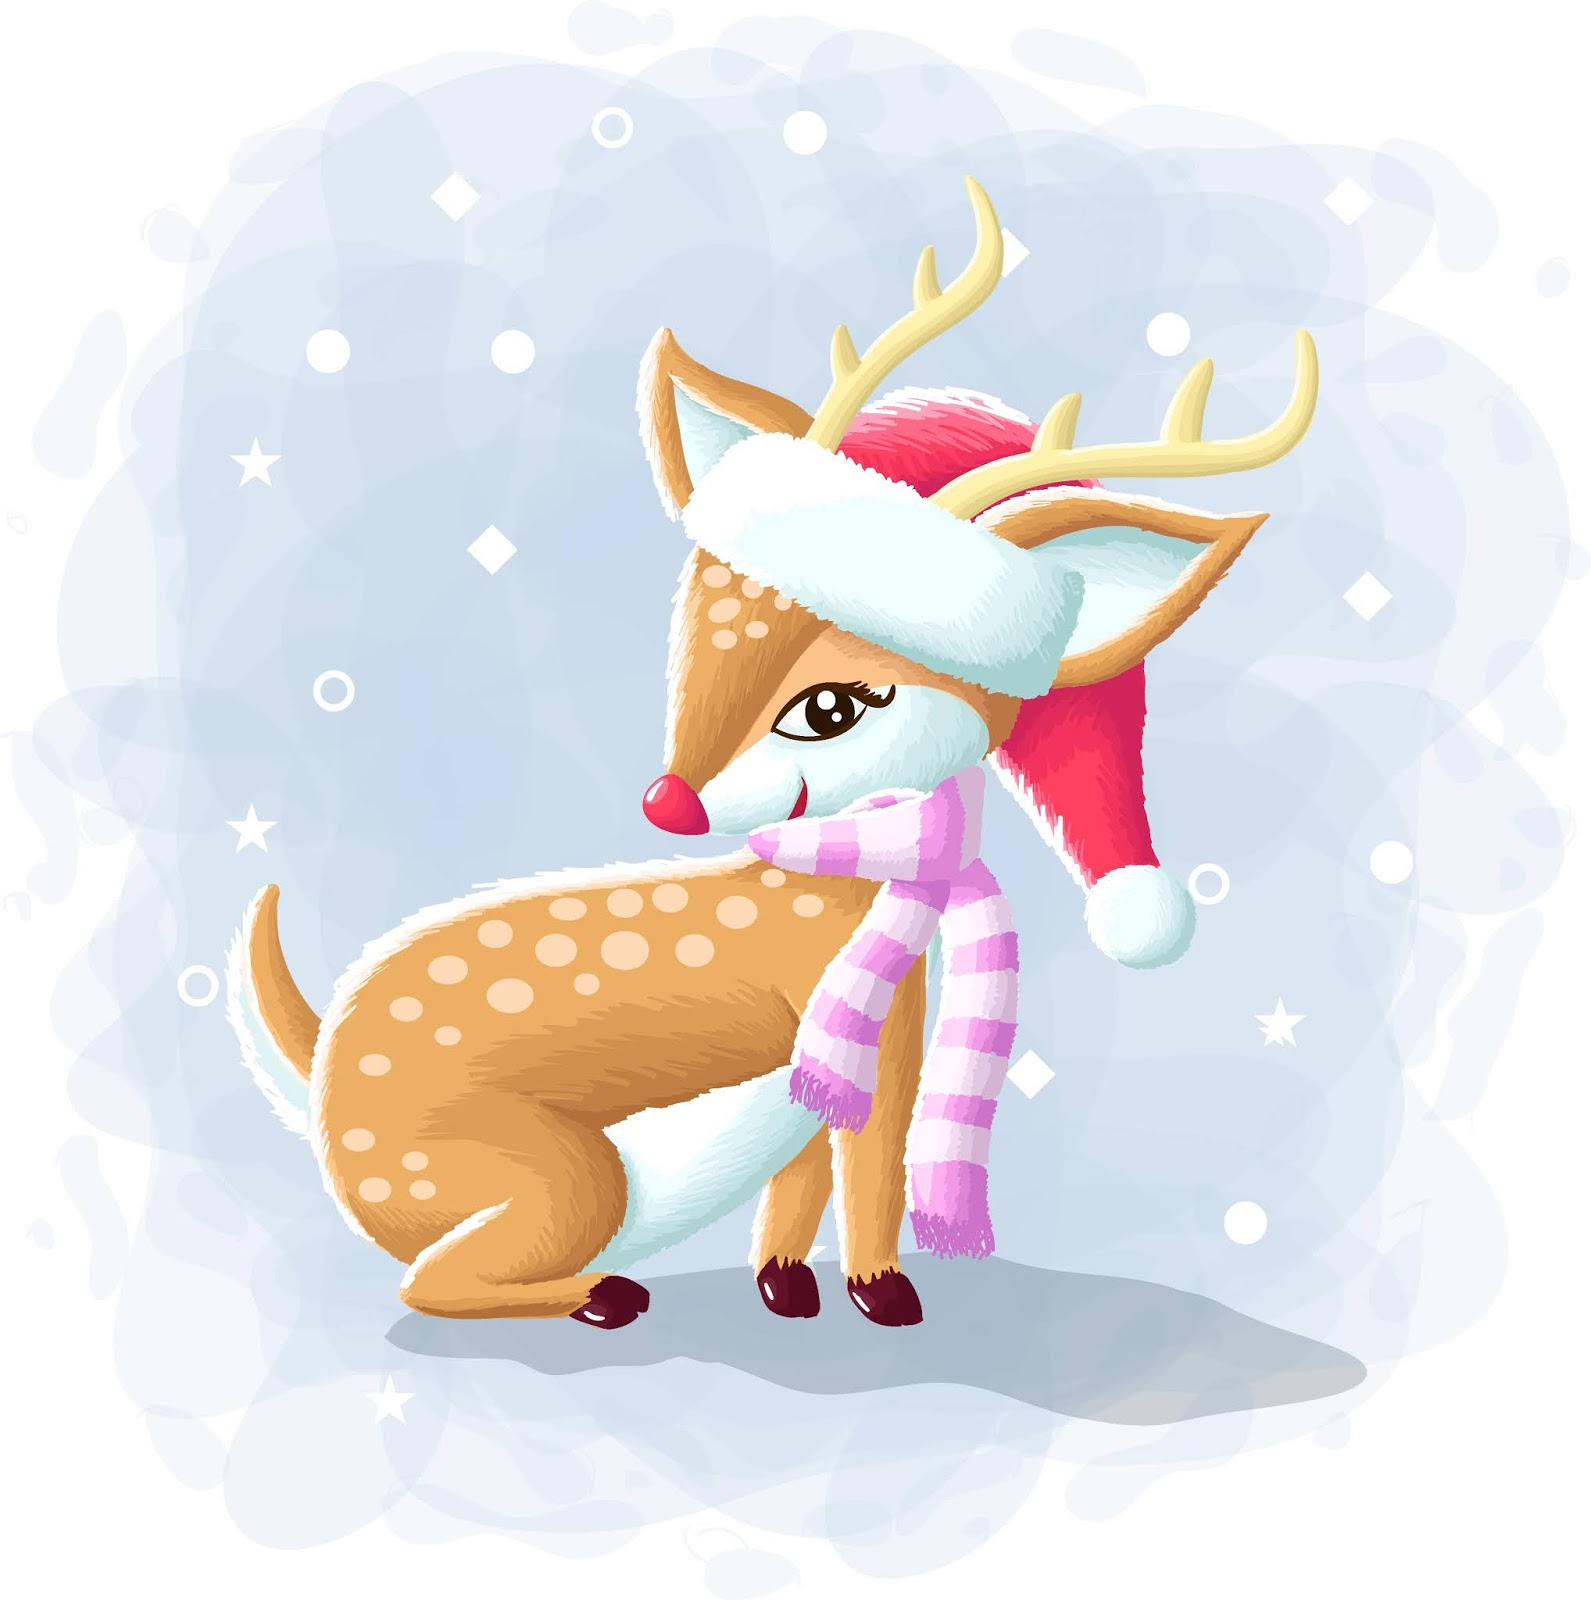 Cartoon Cute Deer Merry Christmas Illustration Free Download Vector CDR, AI, EPS and PNG Formats